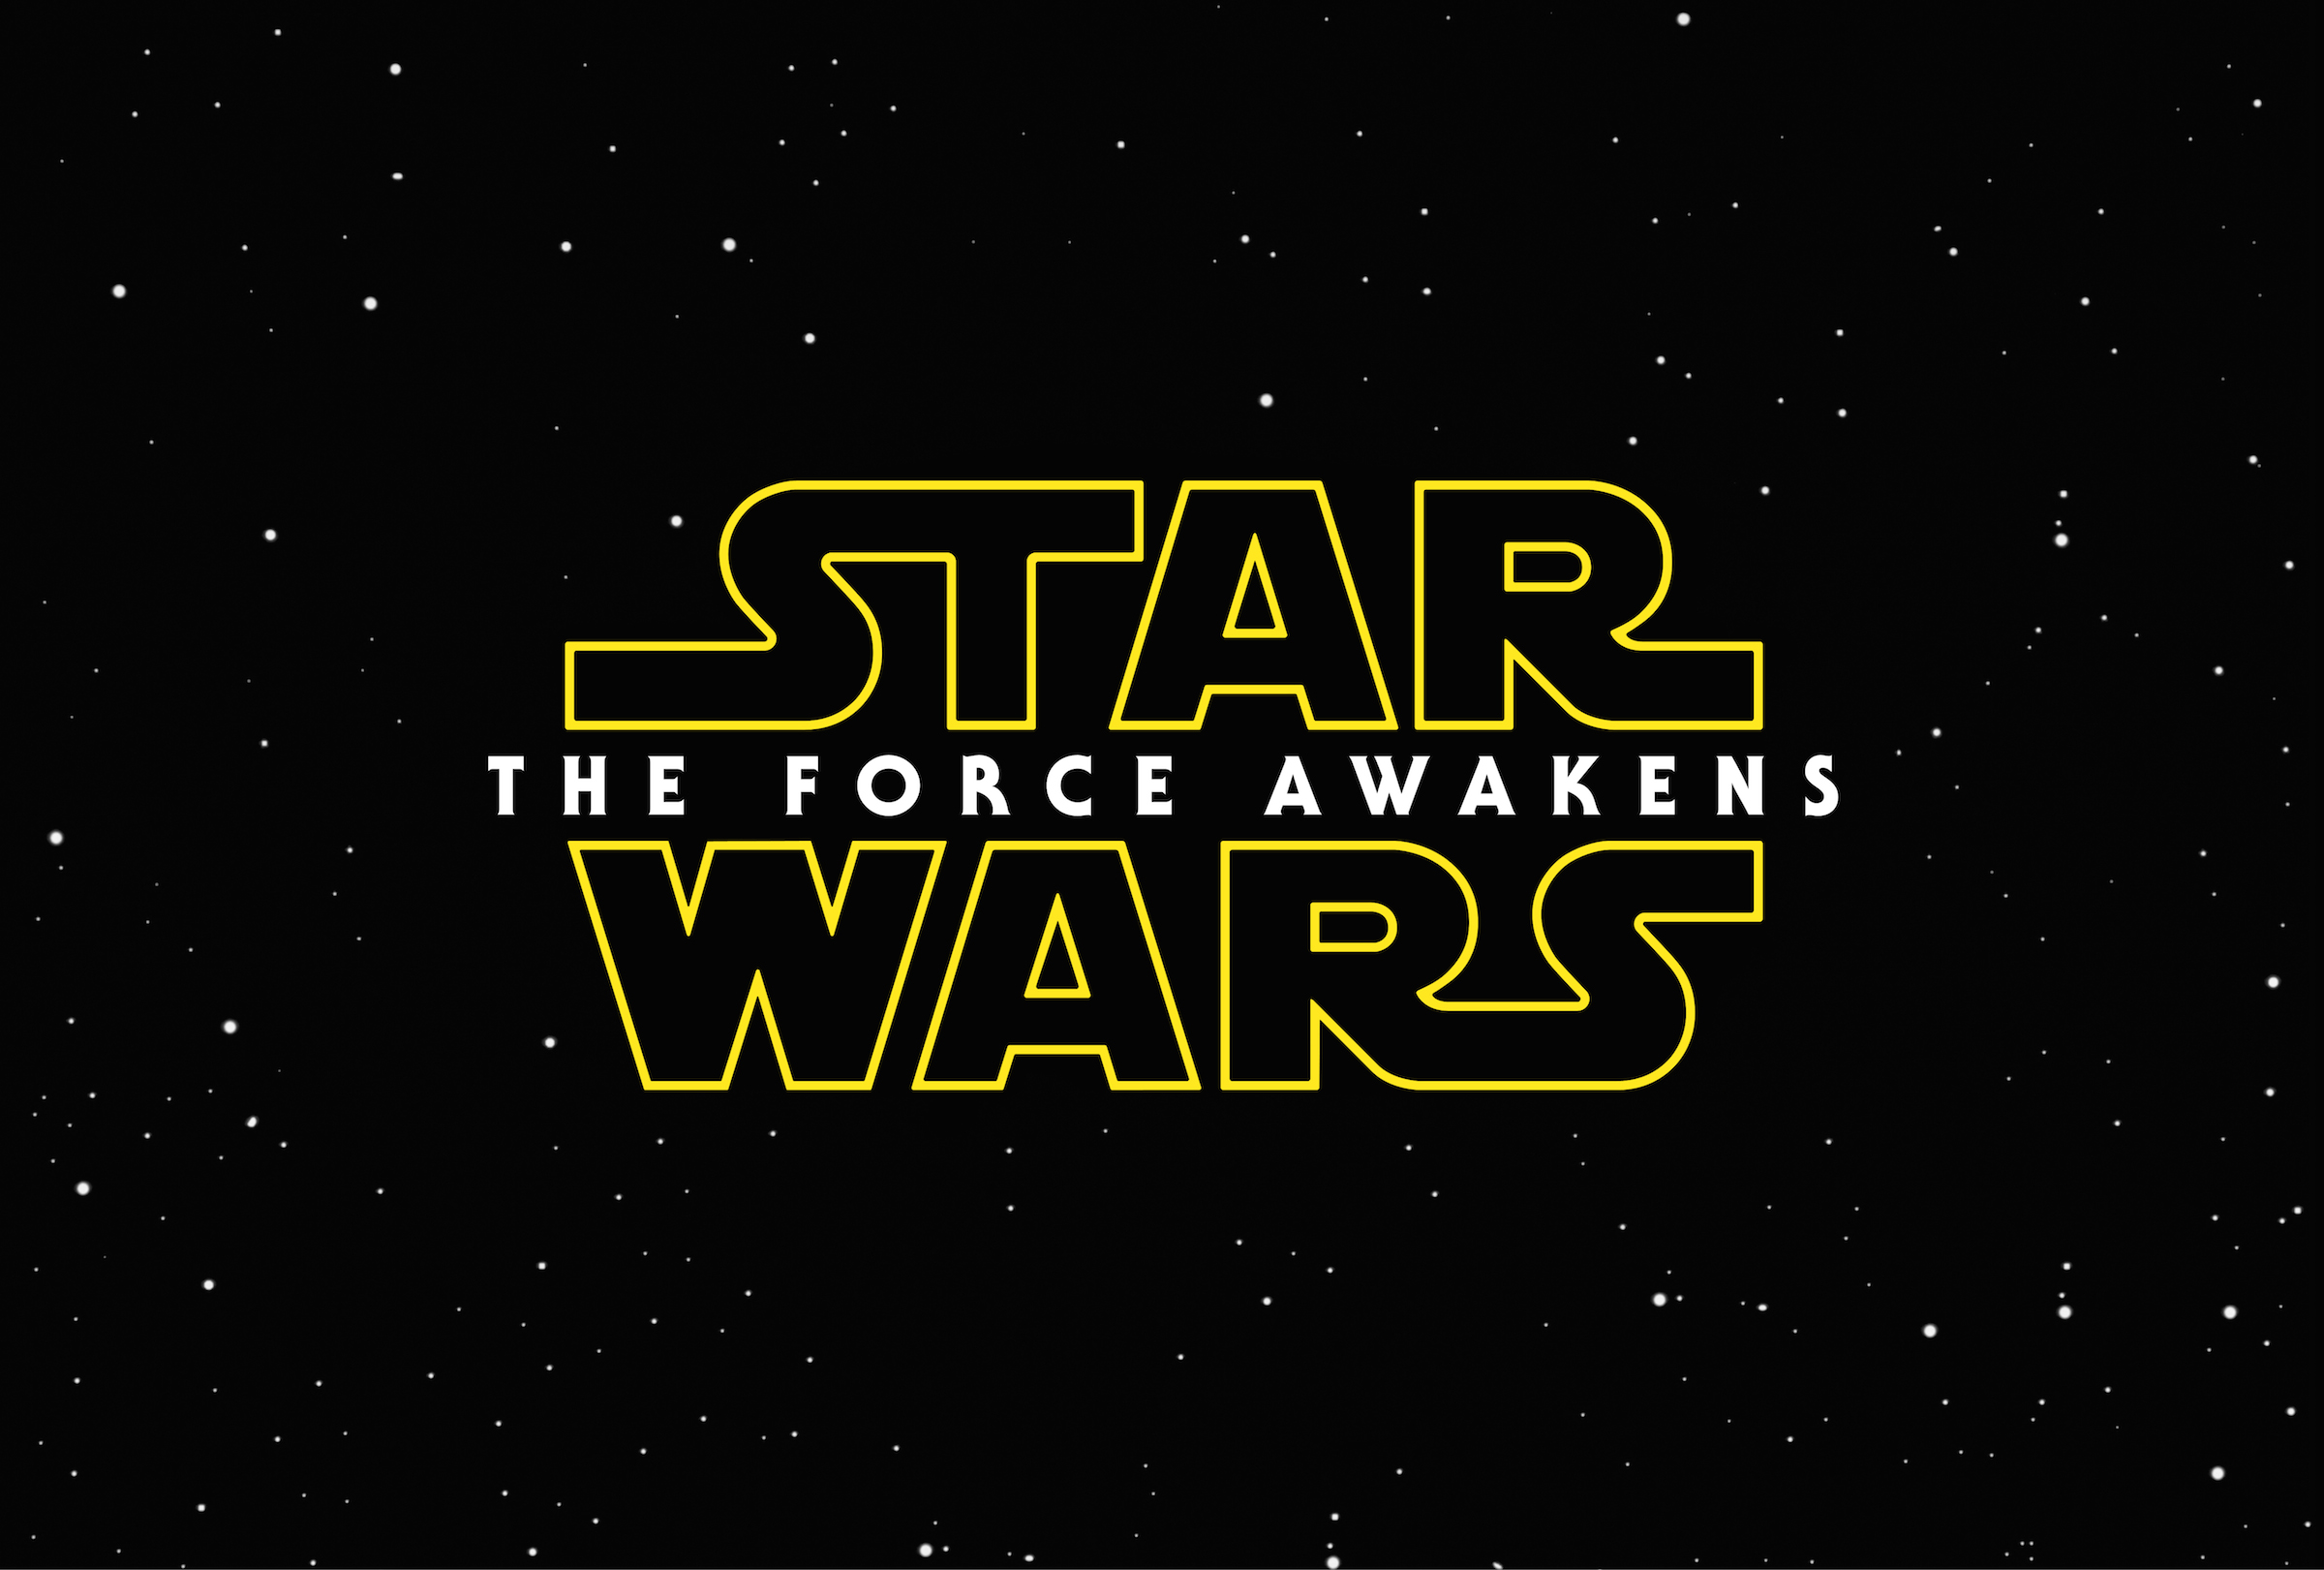 Star Wars 7 Book Club The Force Awakens That Could Have Been The Thrawn Trilogy Chapter 1